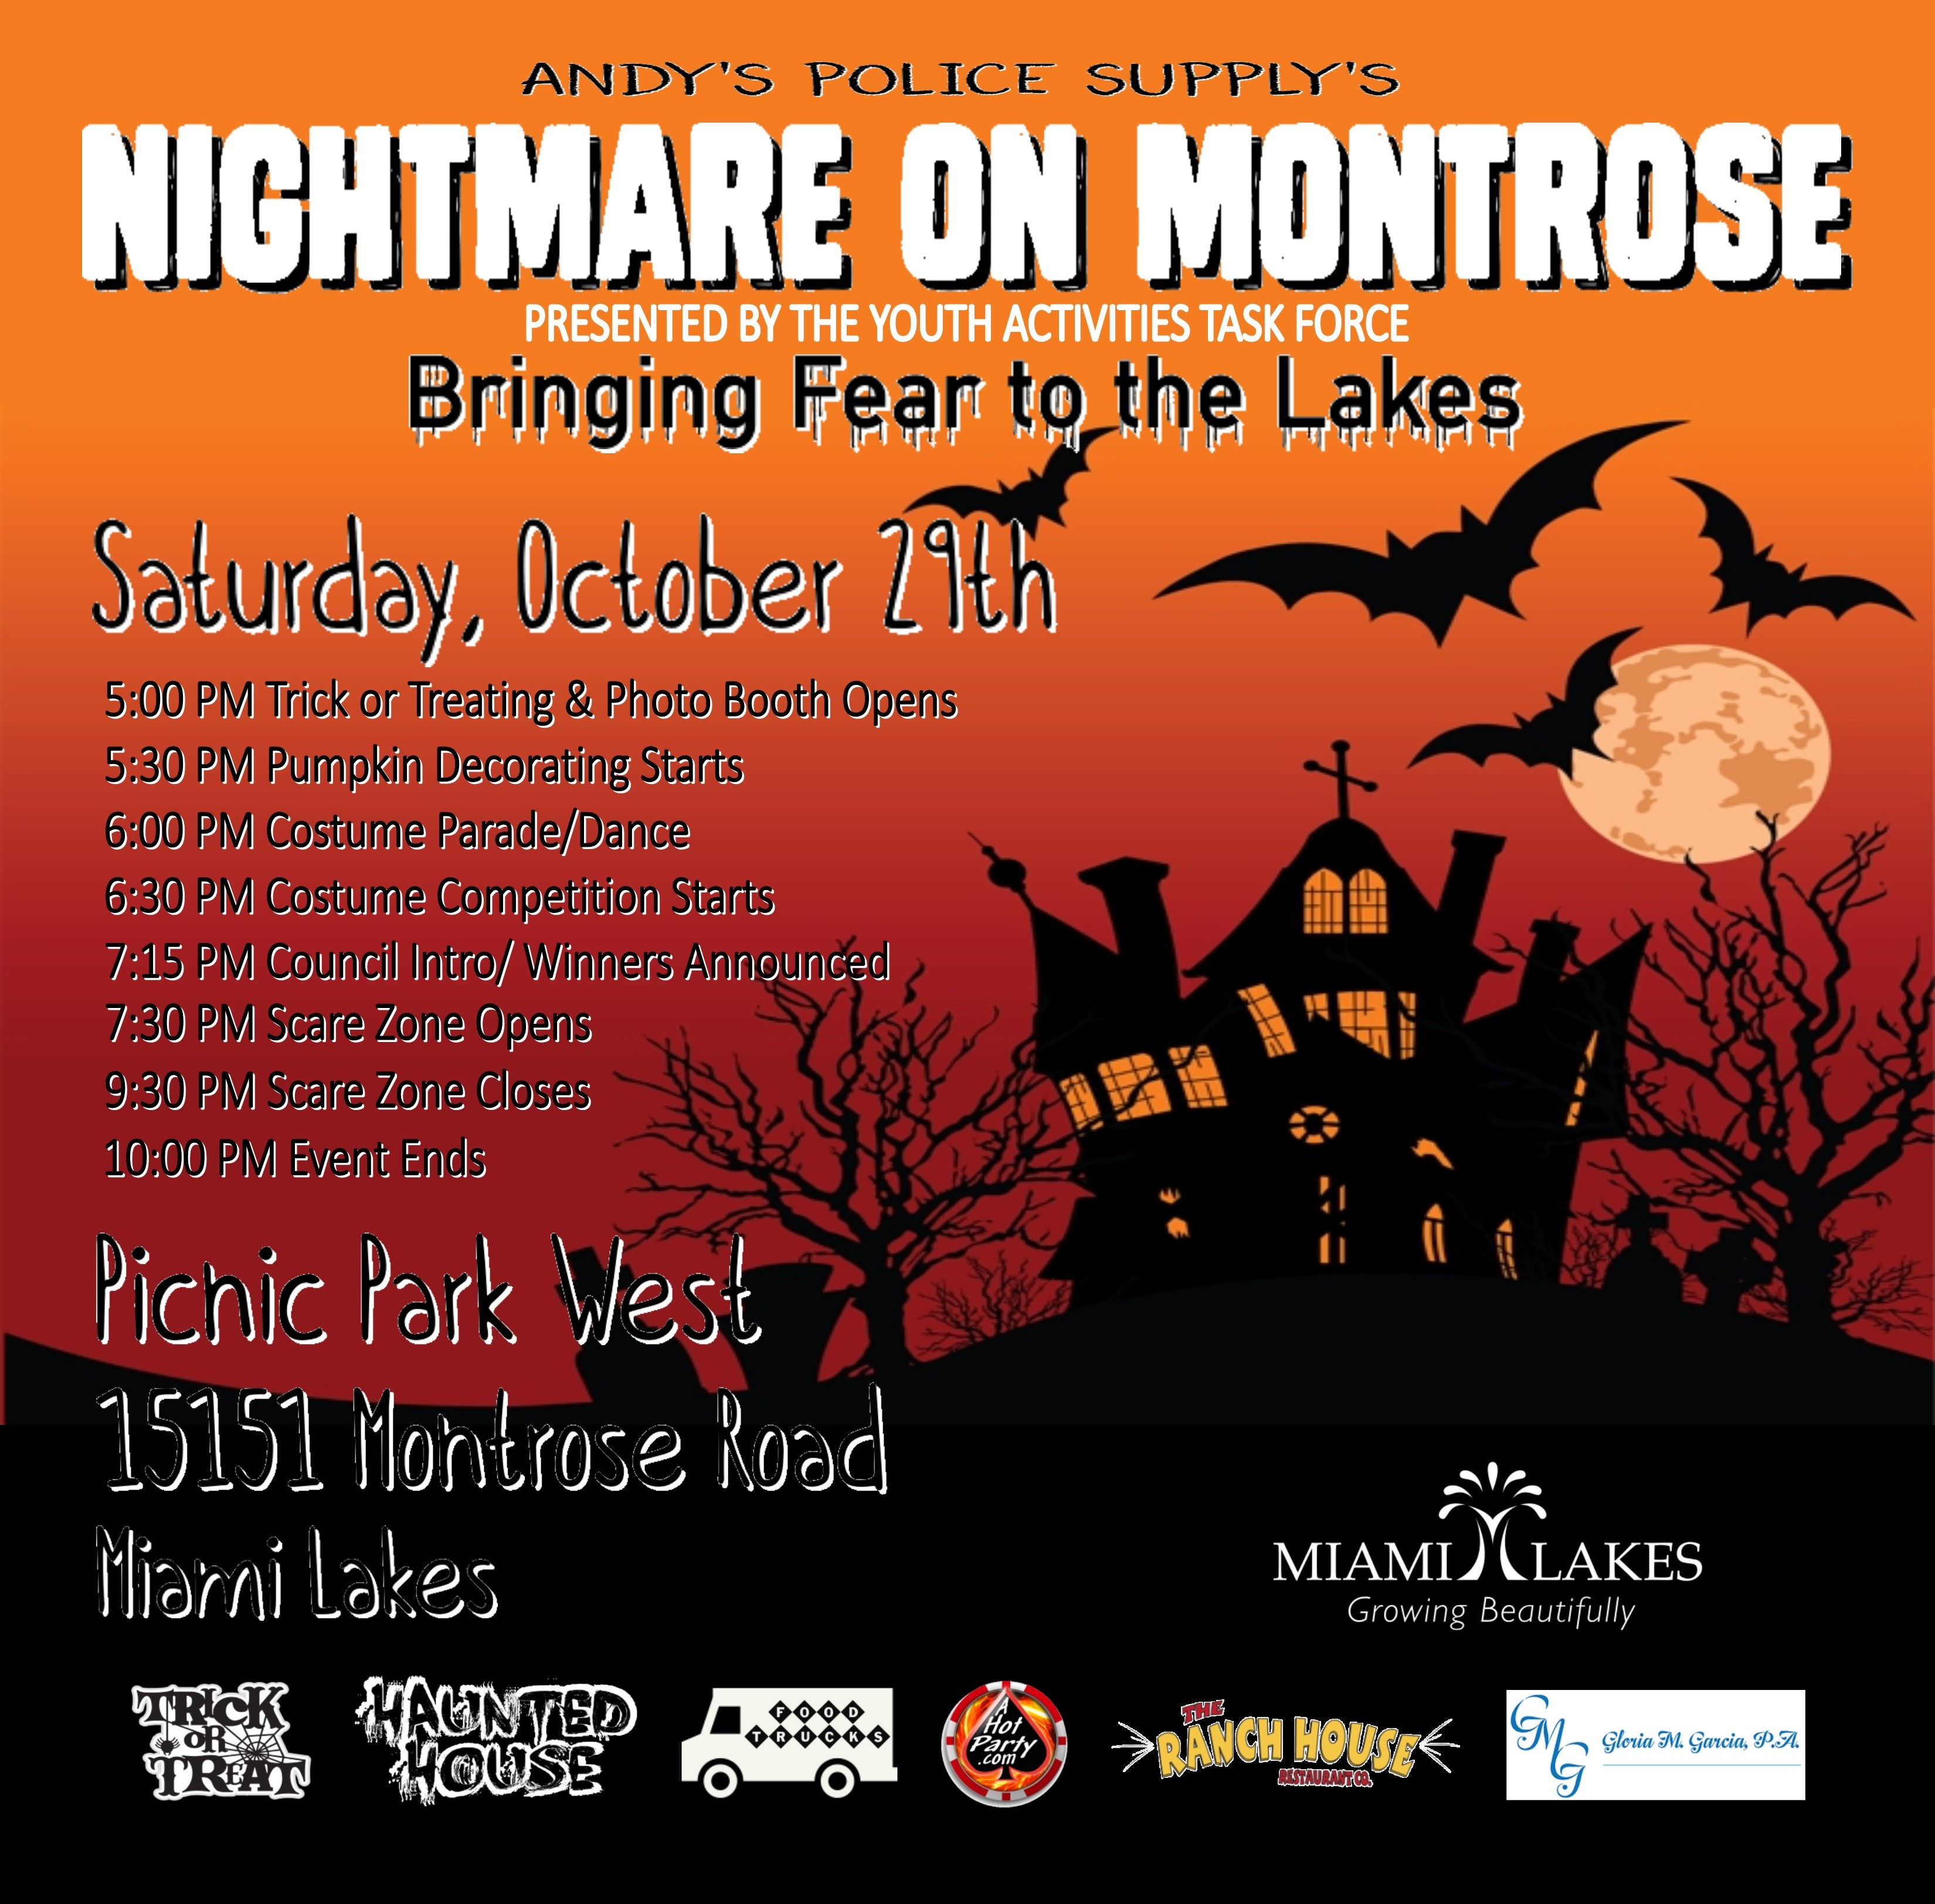 kids of all ages are invited to nightmare on montrose saturday october 29th beginning at the haunting hour of 5 pm at miami lakes picnic park west